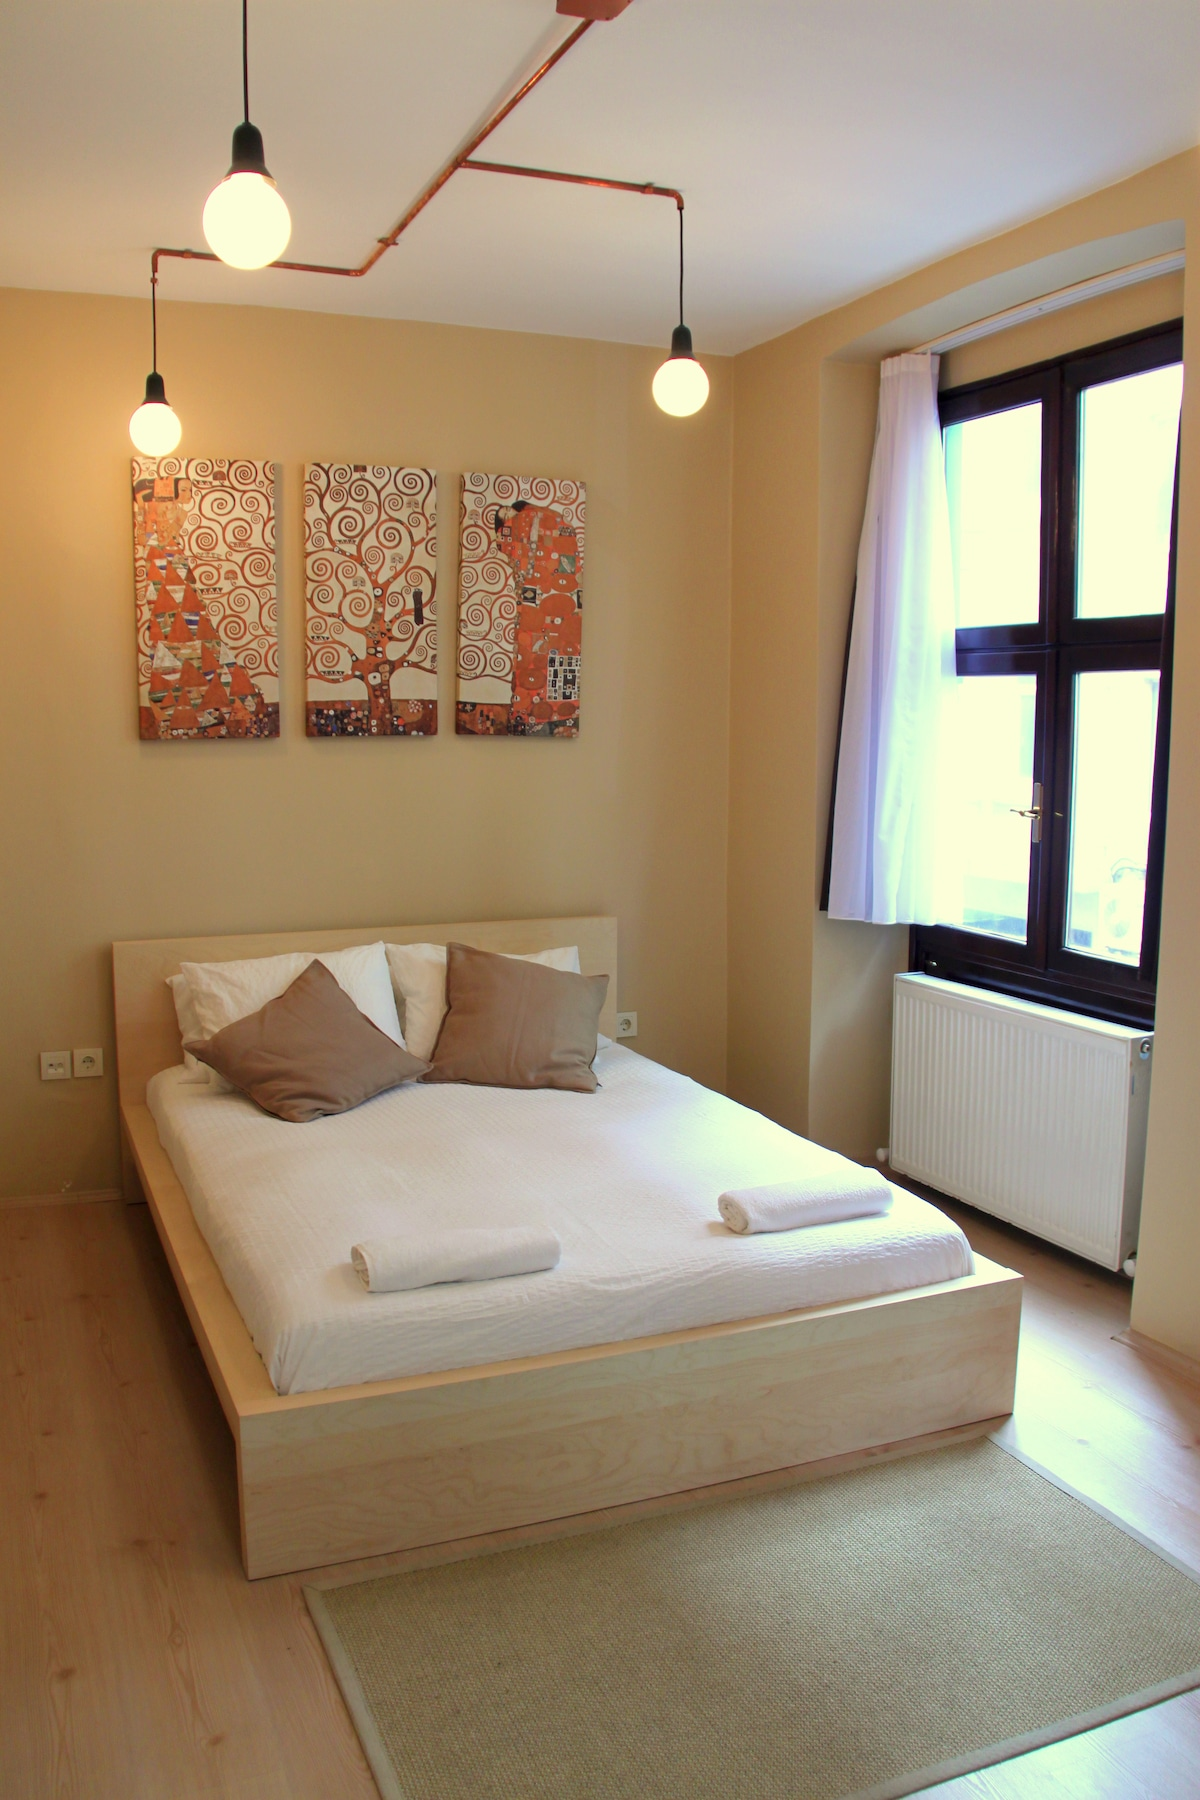 Bedroom, notice the copper tubes of the lighting. I worked hard on it so say something nice!!